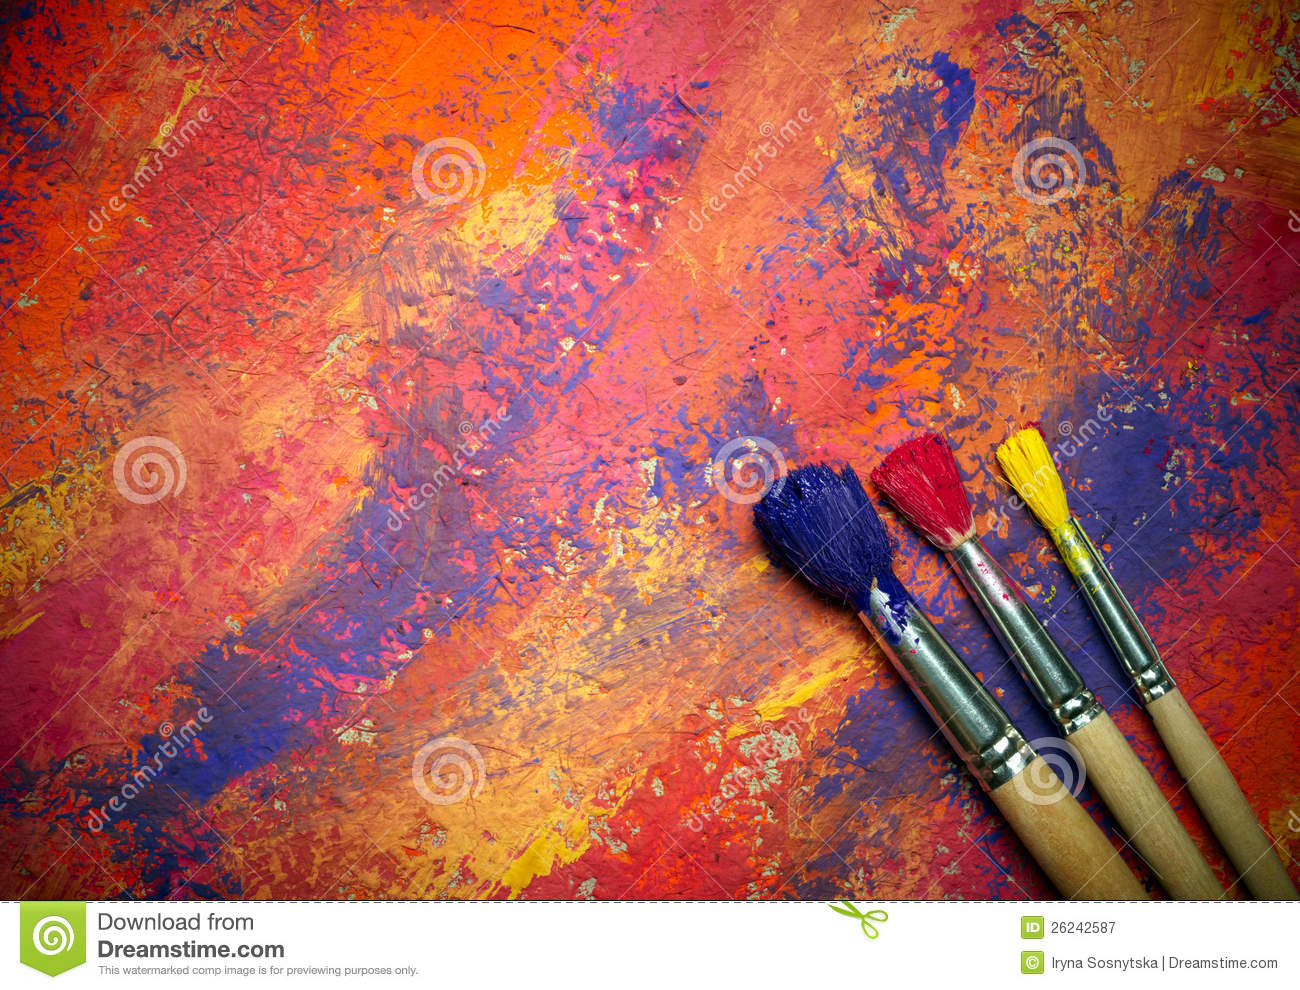 Ipad Retina Wallpaper Art Pain Brush: Paintbrushes On Abstract Background Royalty Free Stock